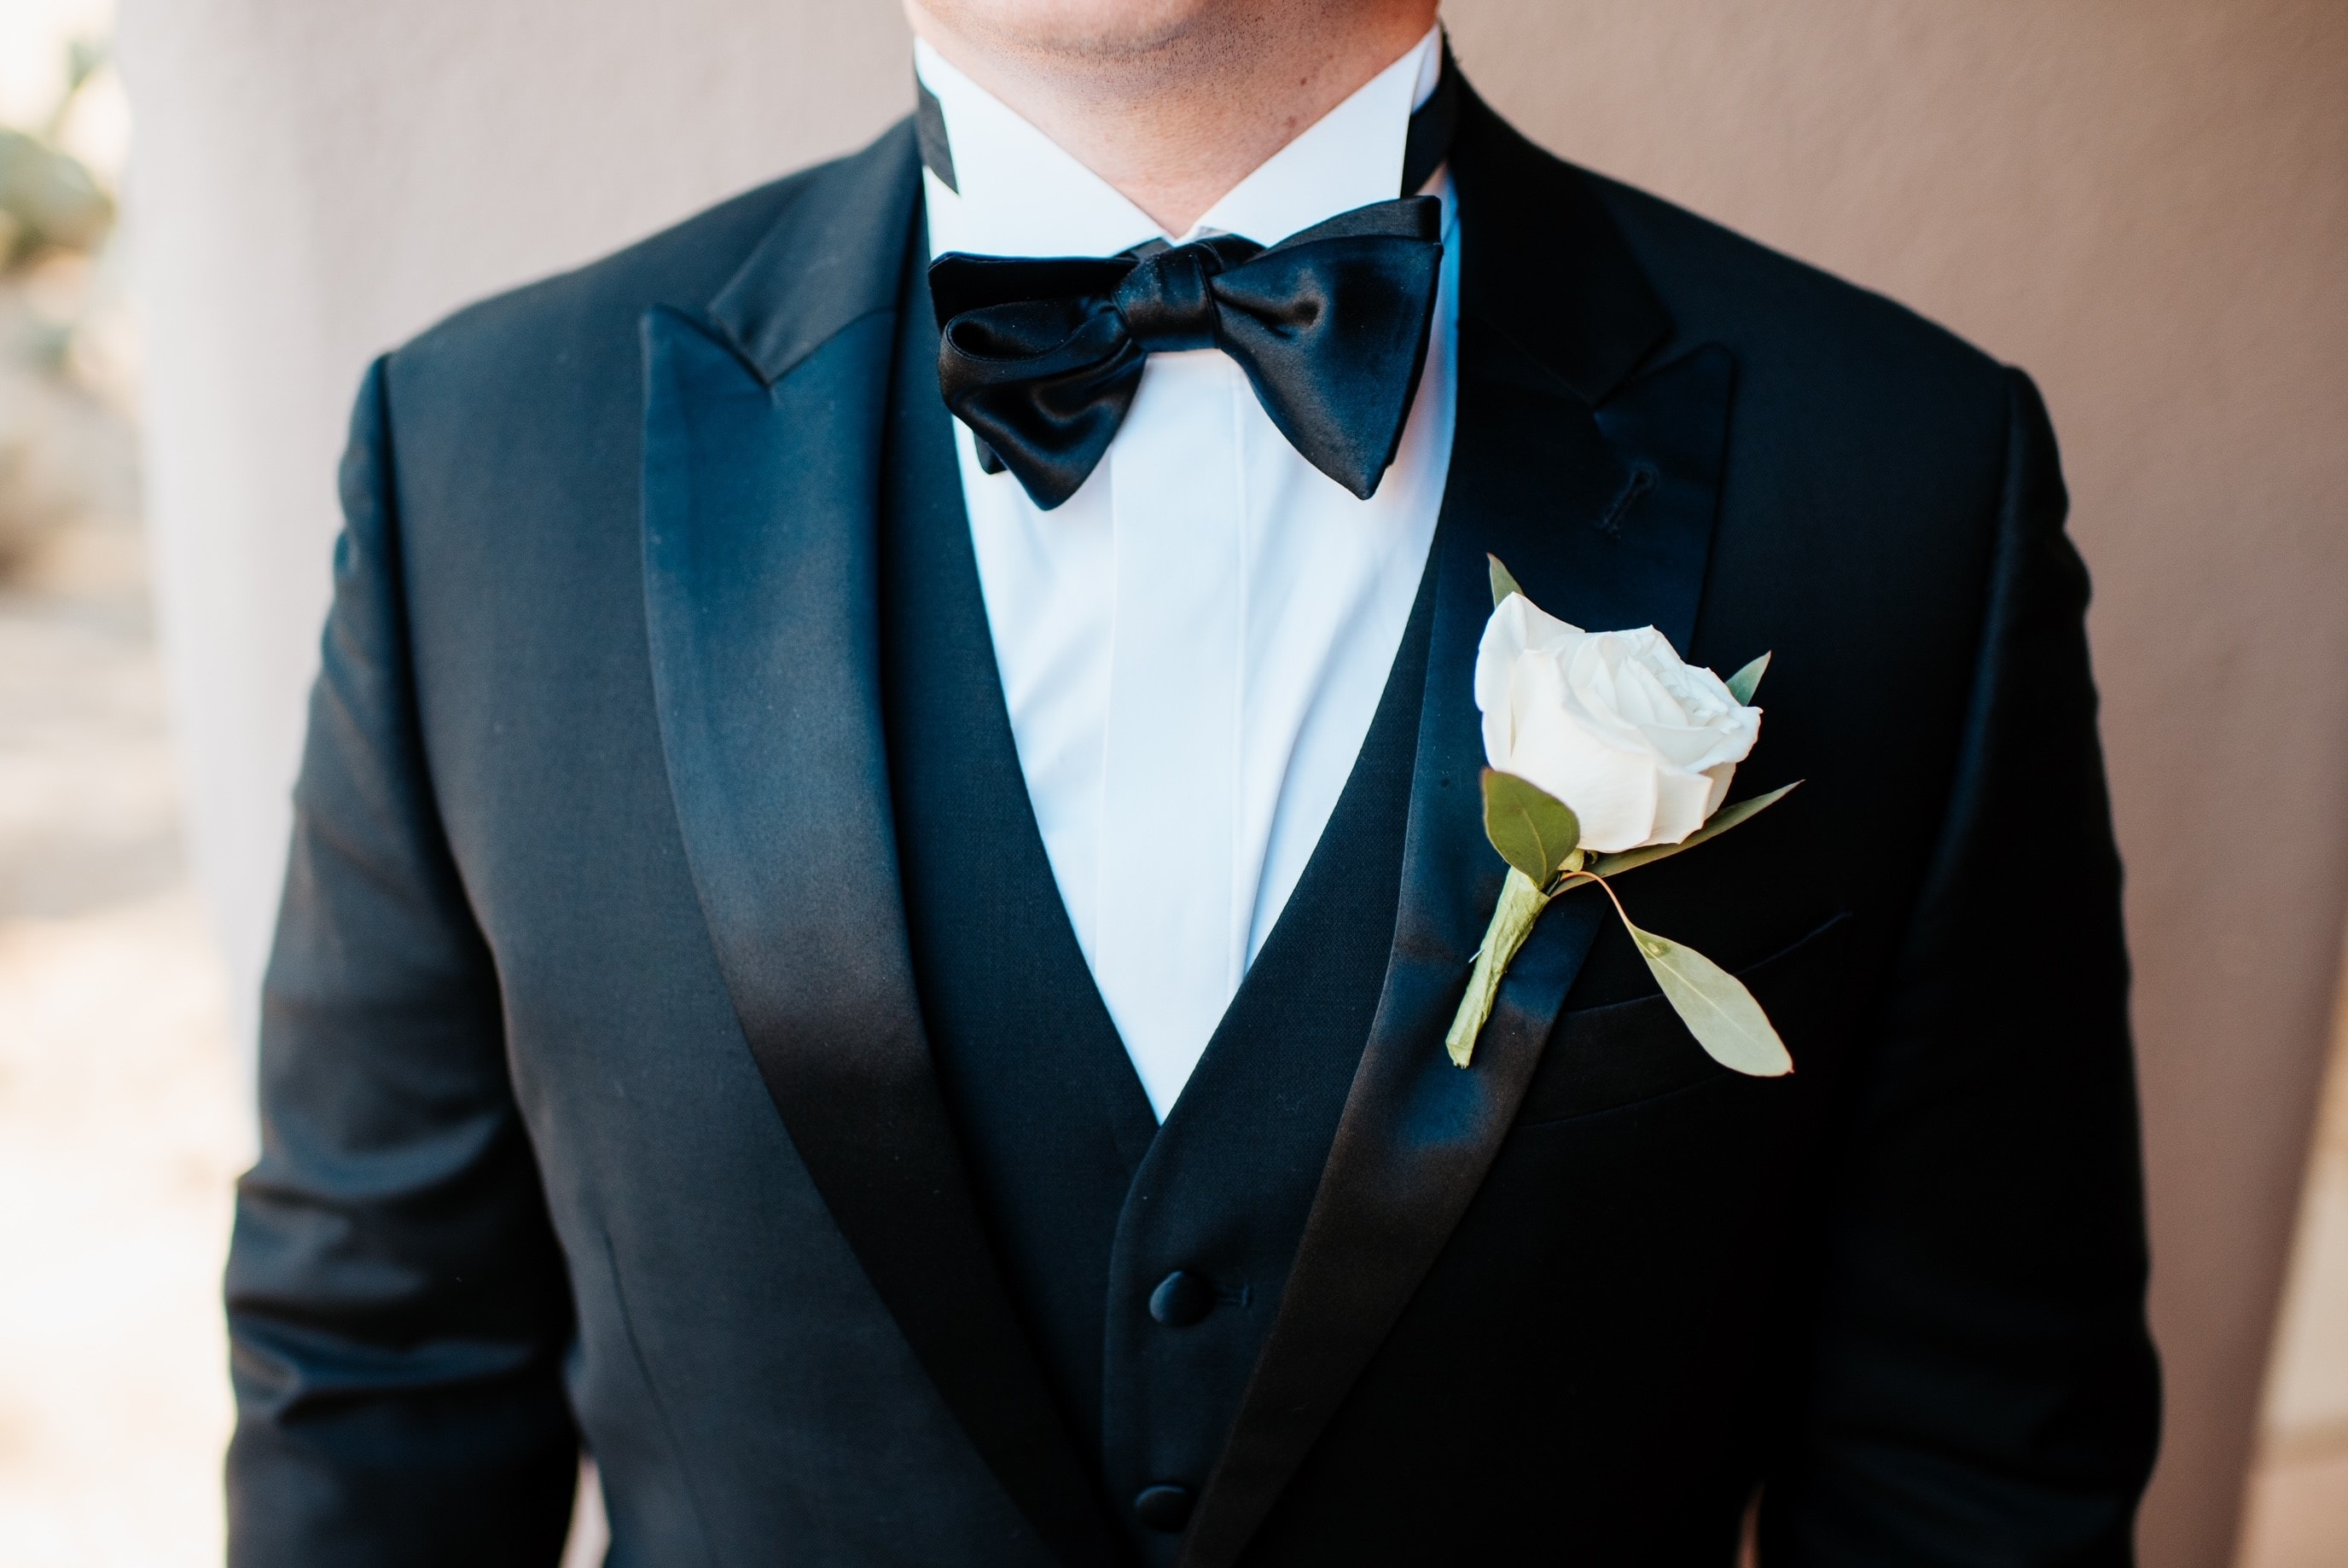 Gorgeous white flower tucked in suit pocket